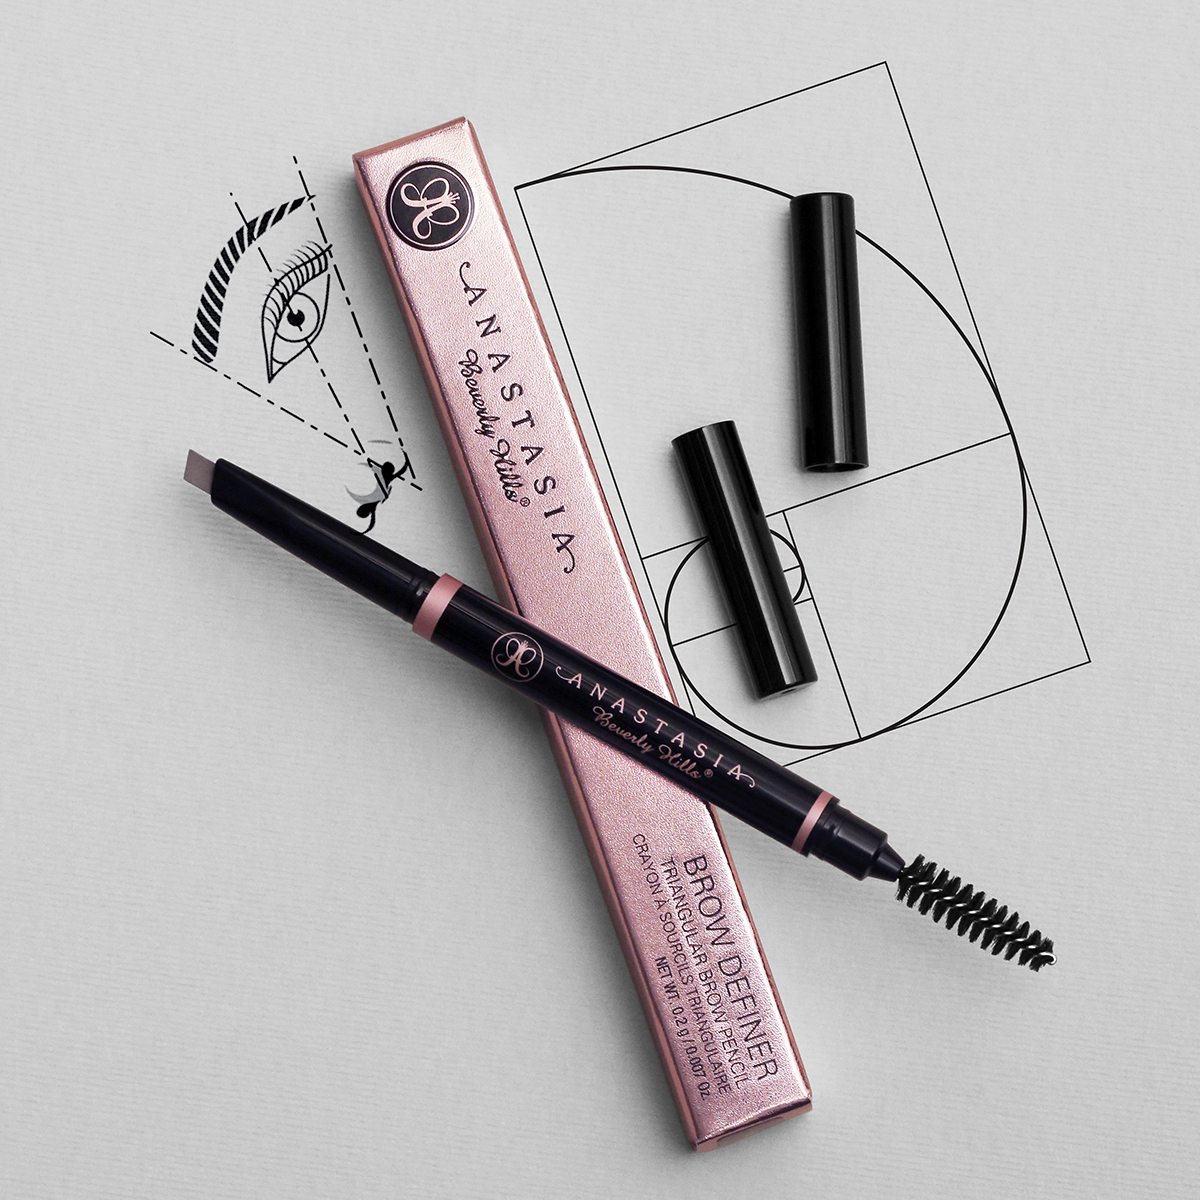 Anastasia Beverly Hills Golden Ratio Patent